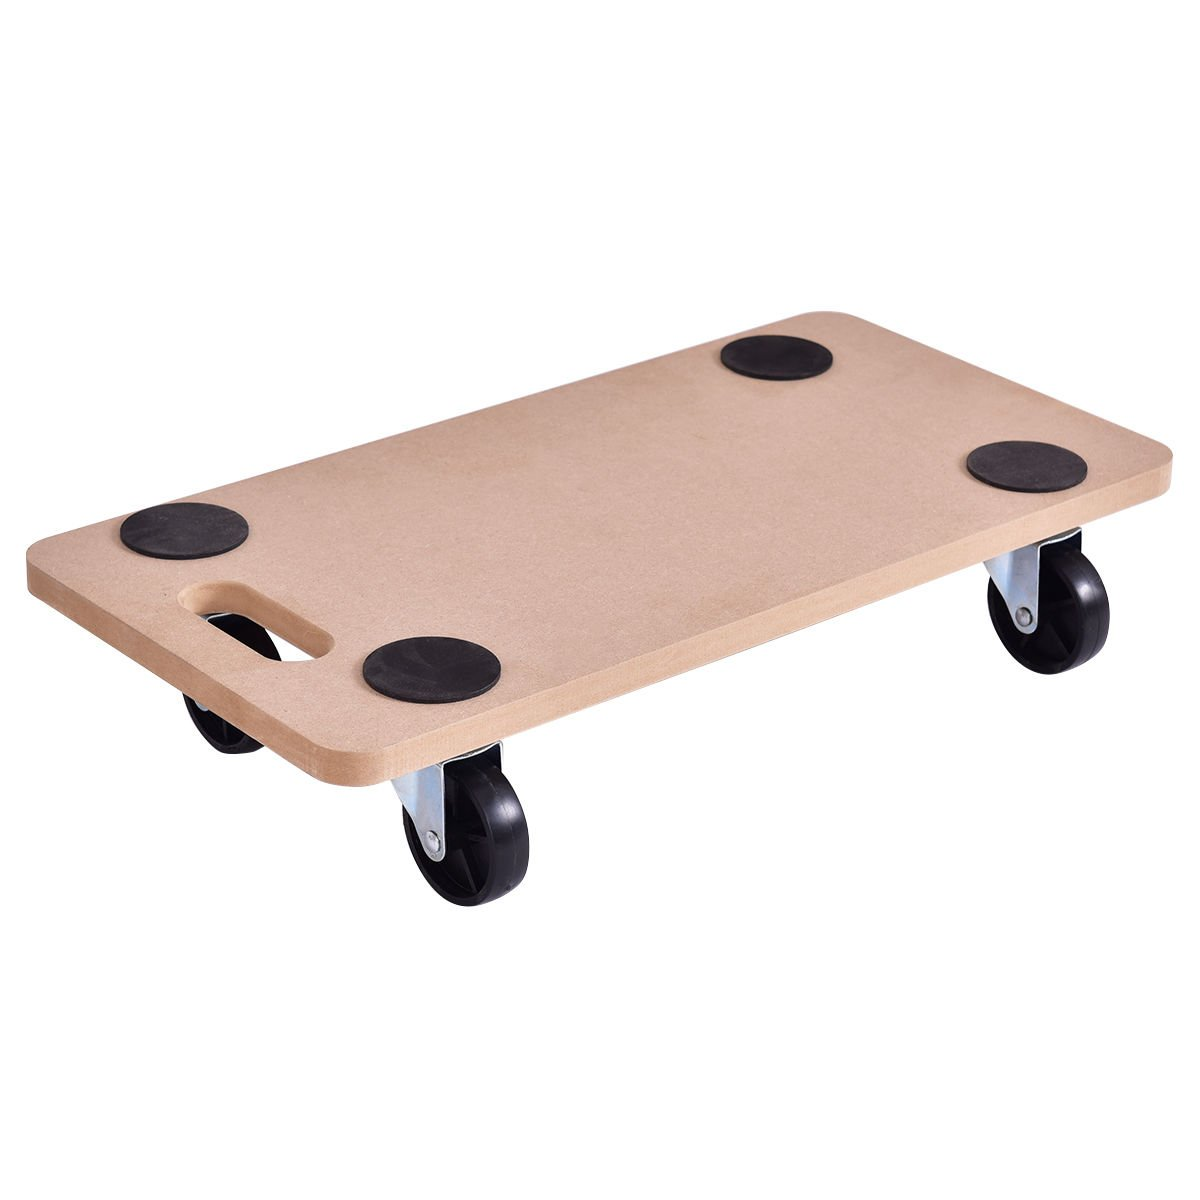 Goplus Moving Dolly Heavy Duty Wood Furniture Dllies Movers Carrier (23'' x11.5'' Platform)